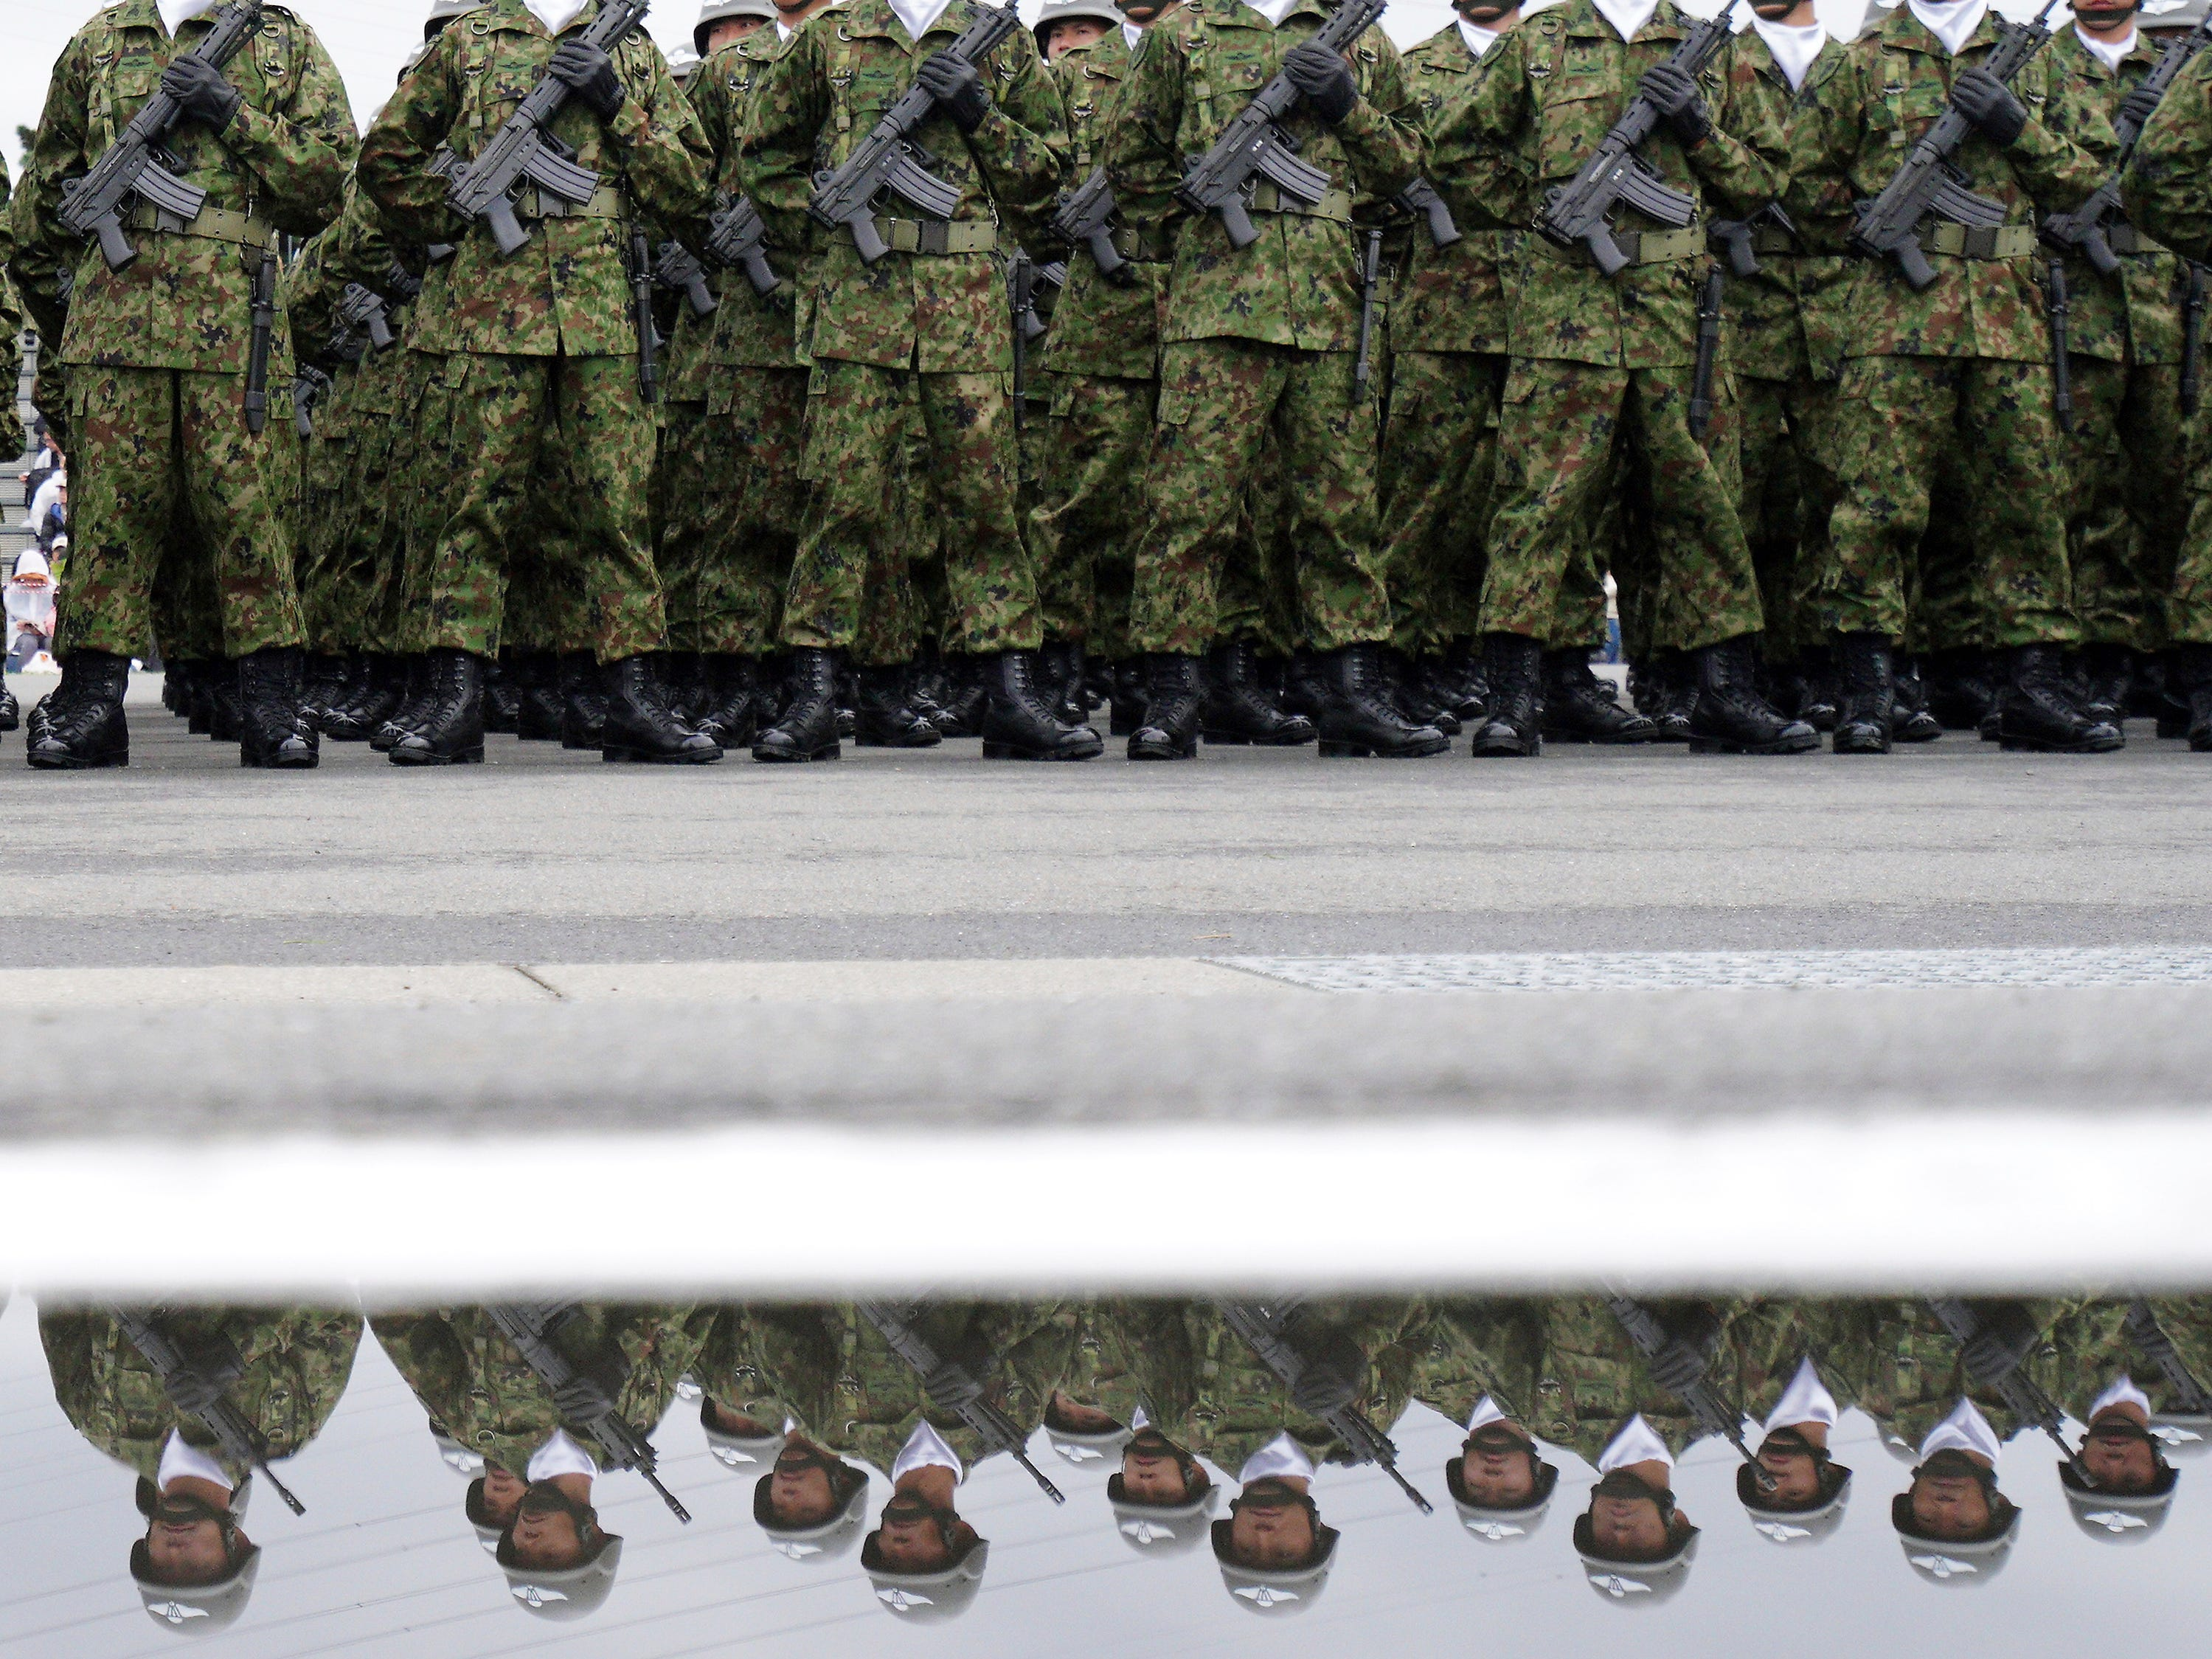 Members of Japan Self-Defense Forces (SDF) stand during the Self-Defense Forces Day at Asaka Base in Asaka, north of Tokyo, Sunday, Oct. 14, 2018. Prime Minister Shinzo Abe renewed his pledge to push for a revision to Japan's war-renouncing constitution at an annual defense review. (AP Photo/Eugene Hoshiko)